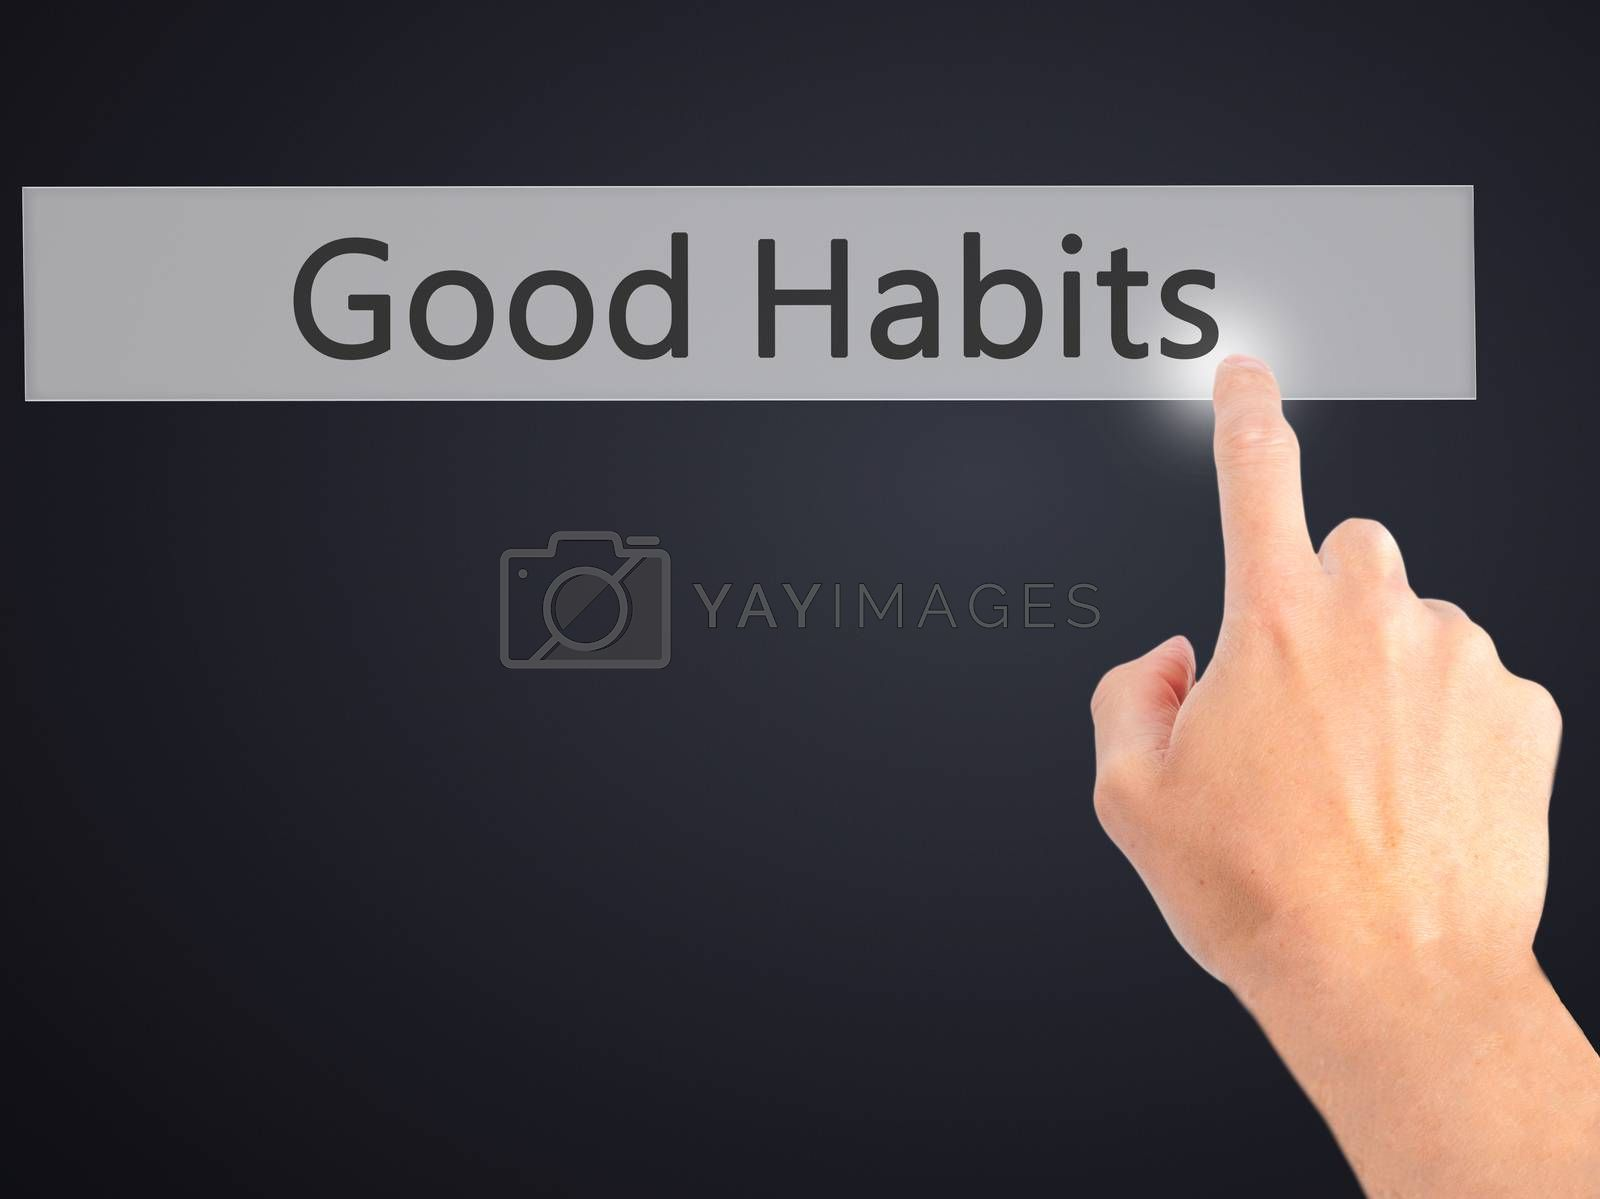 Good Habits - Hand pressing a button on blurred background conce by netsay.net